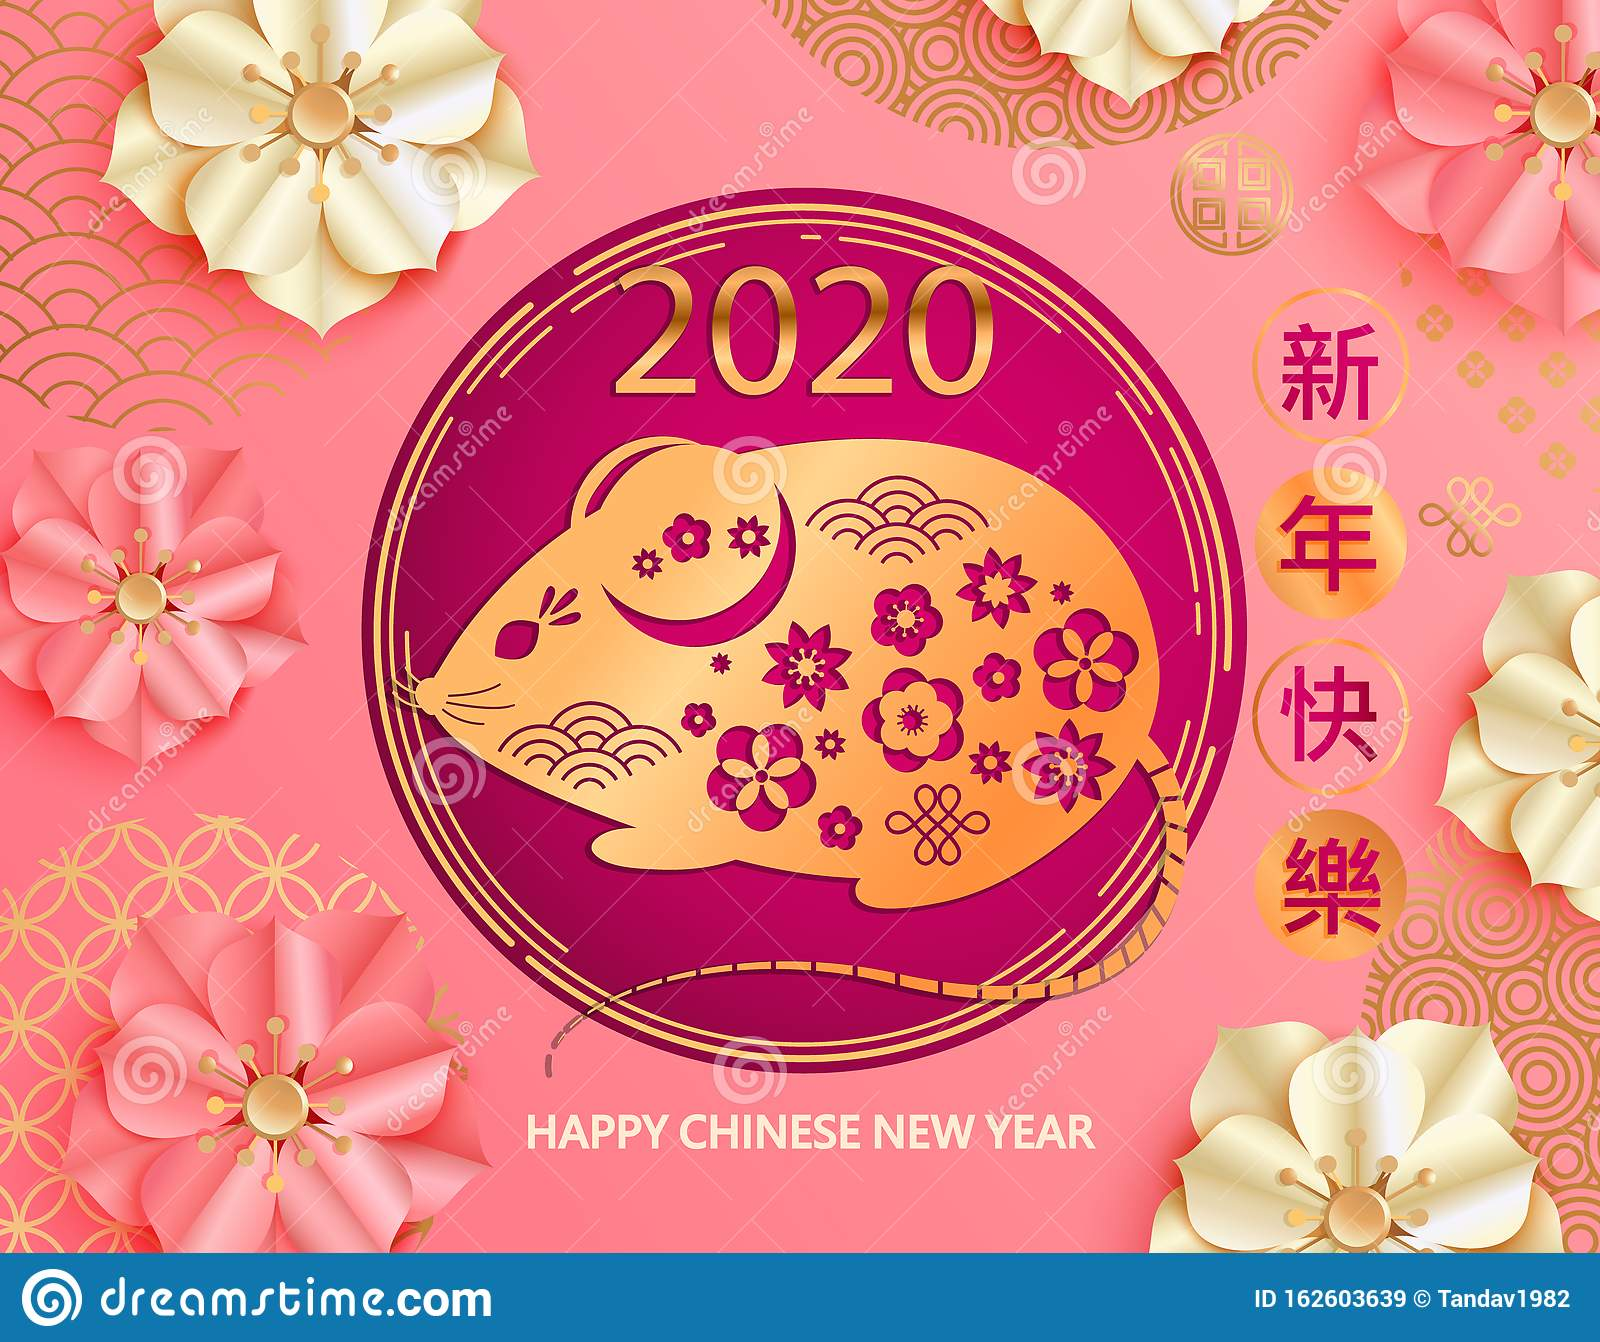 Chinese New Year Card With Golden Rat Stock Vector Illustration Of Festival 2020 162603639